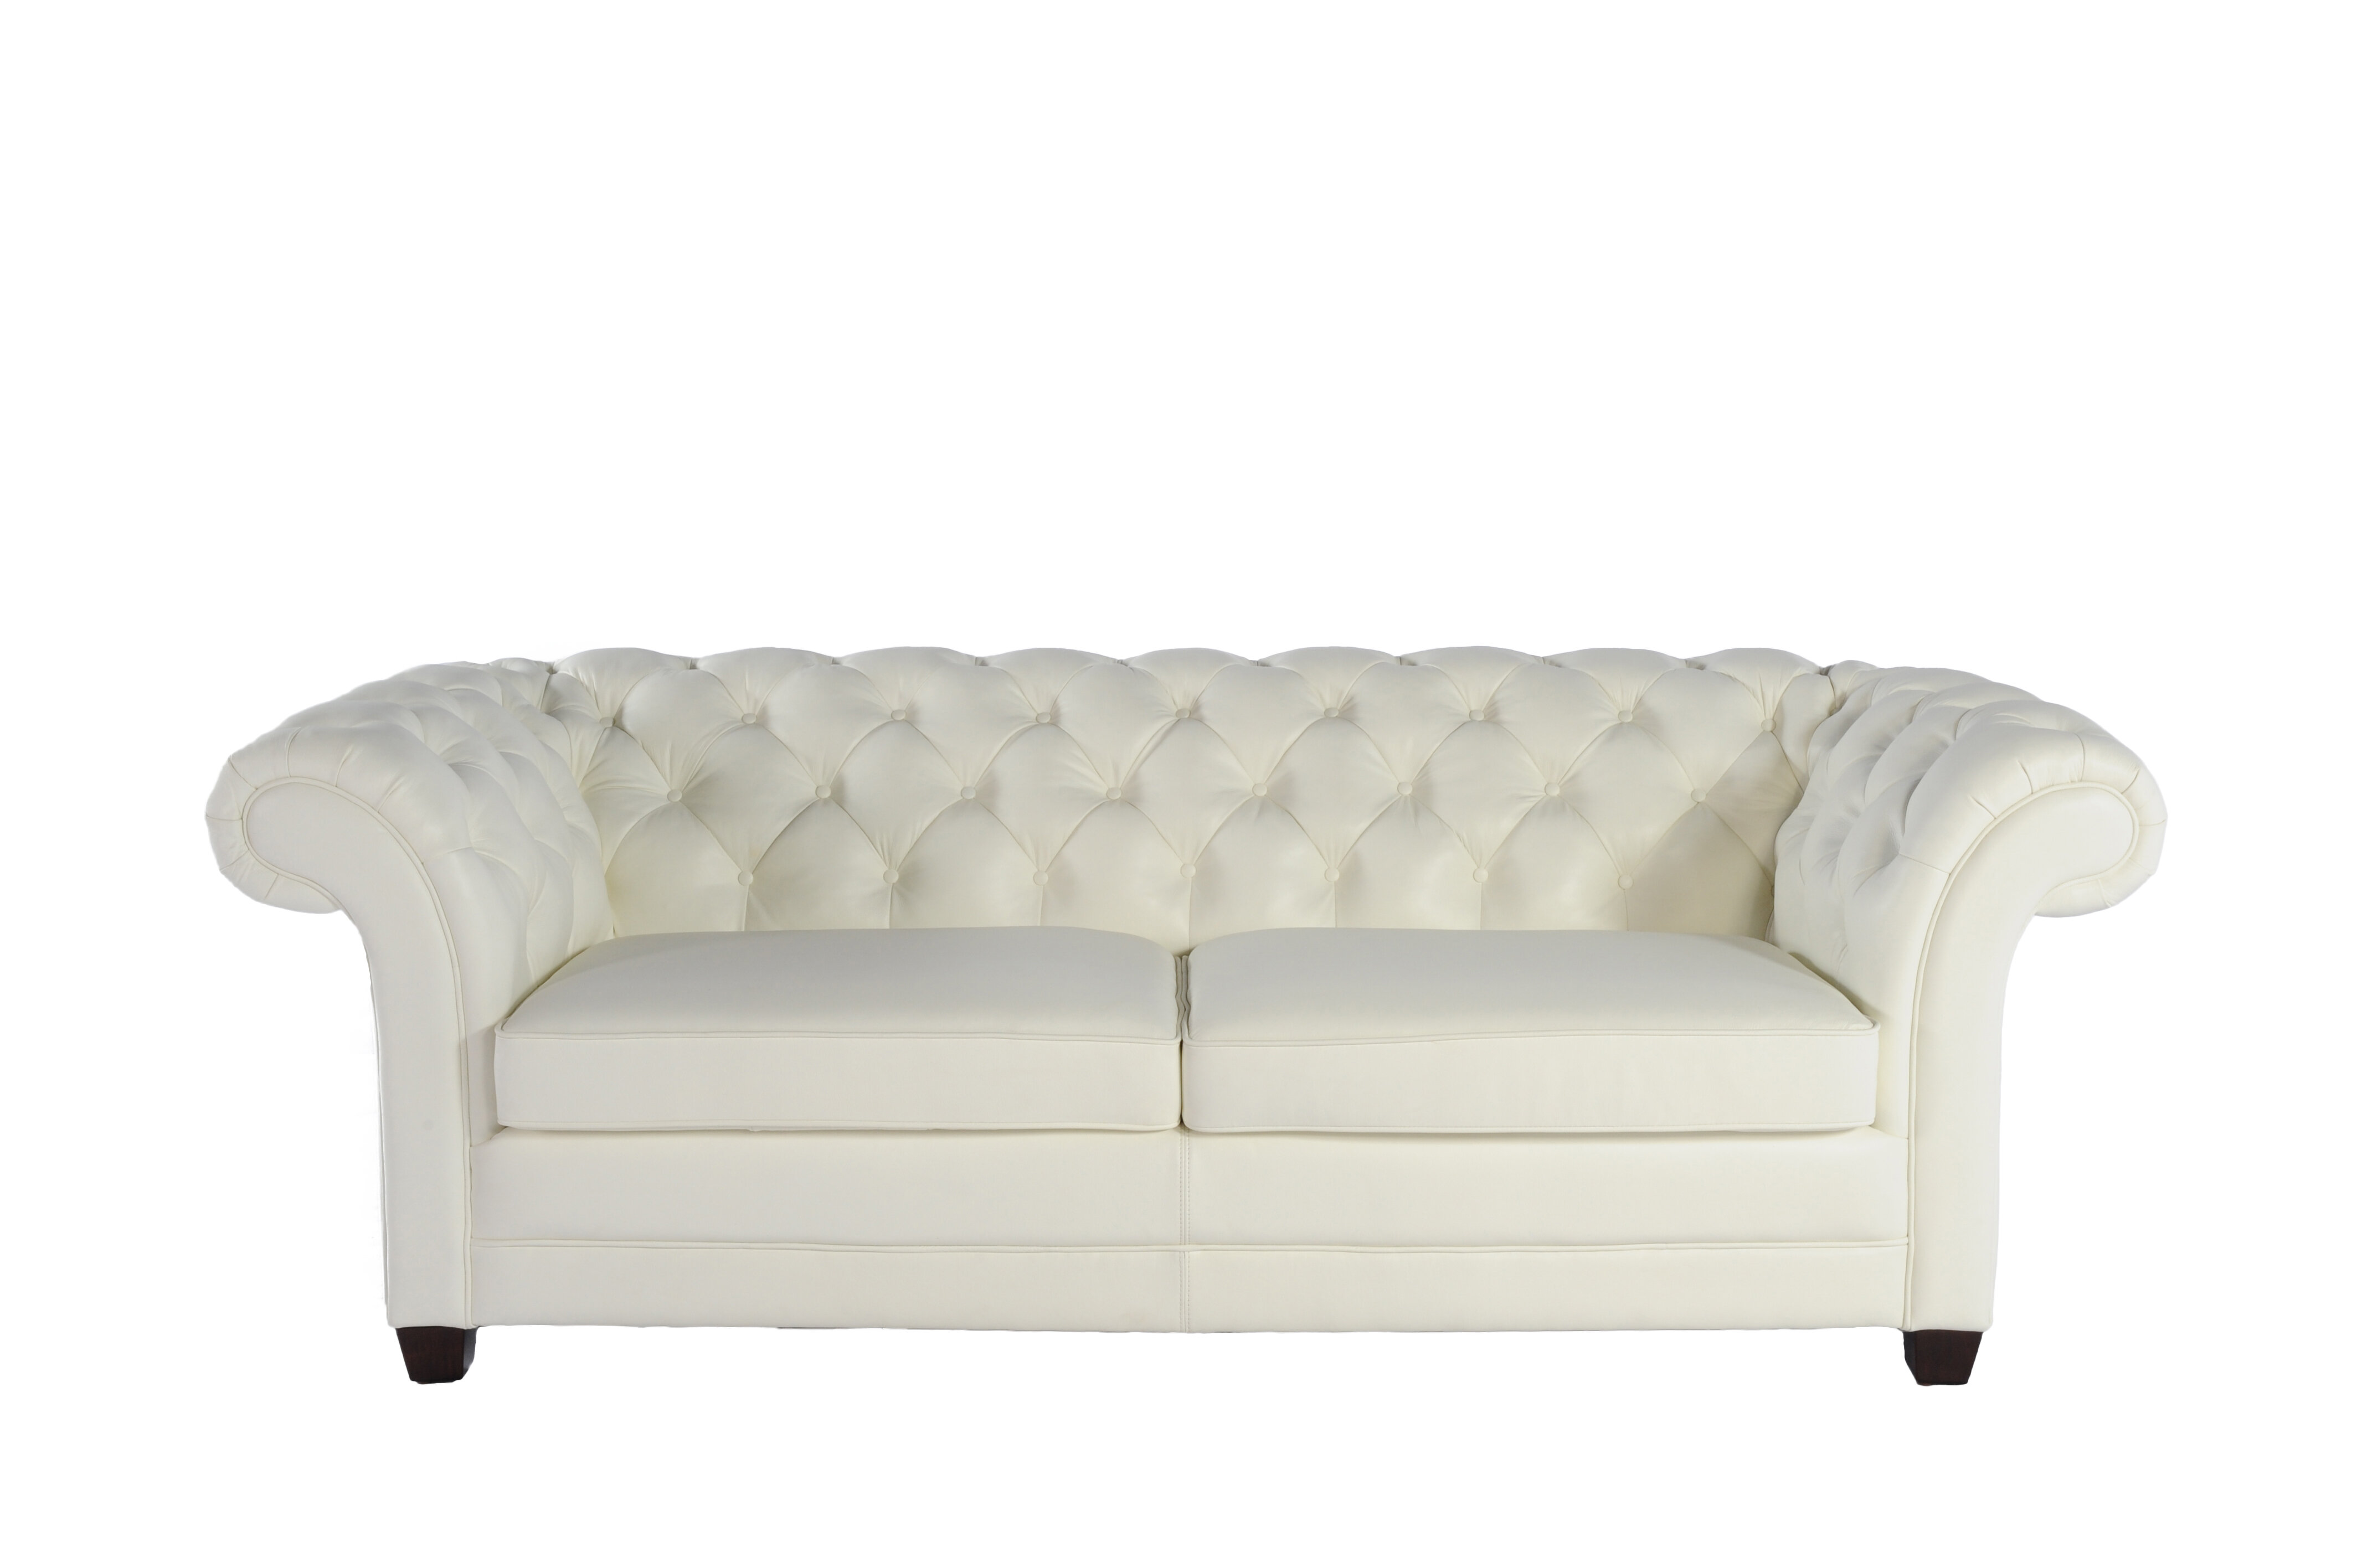 Delicieux Lazzaro Leather Leather Chesterfield Sofa U0026 Reviews | Wayfair